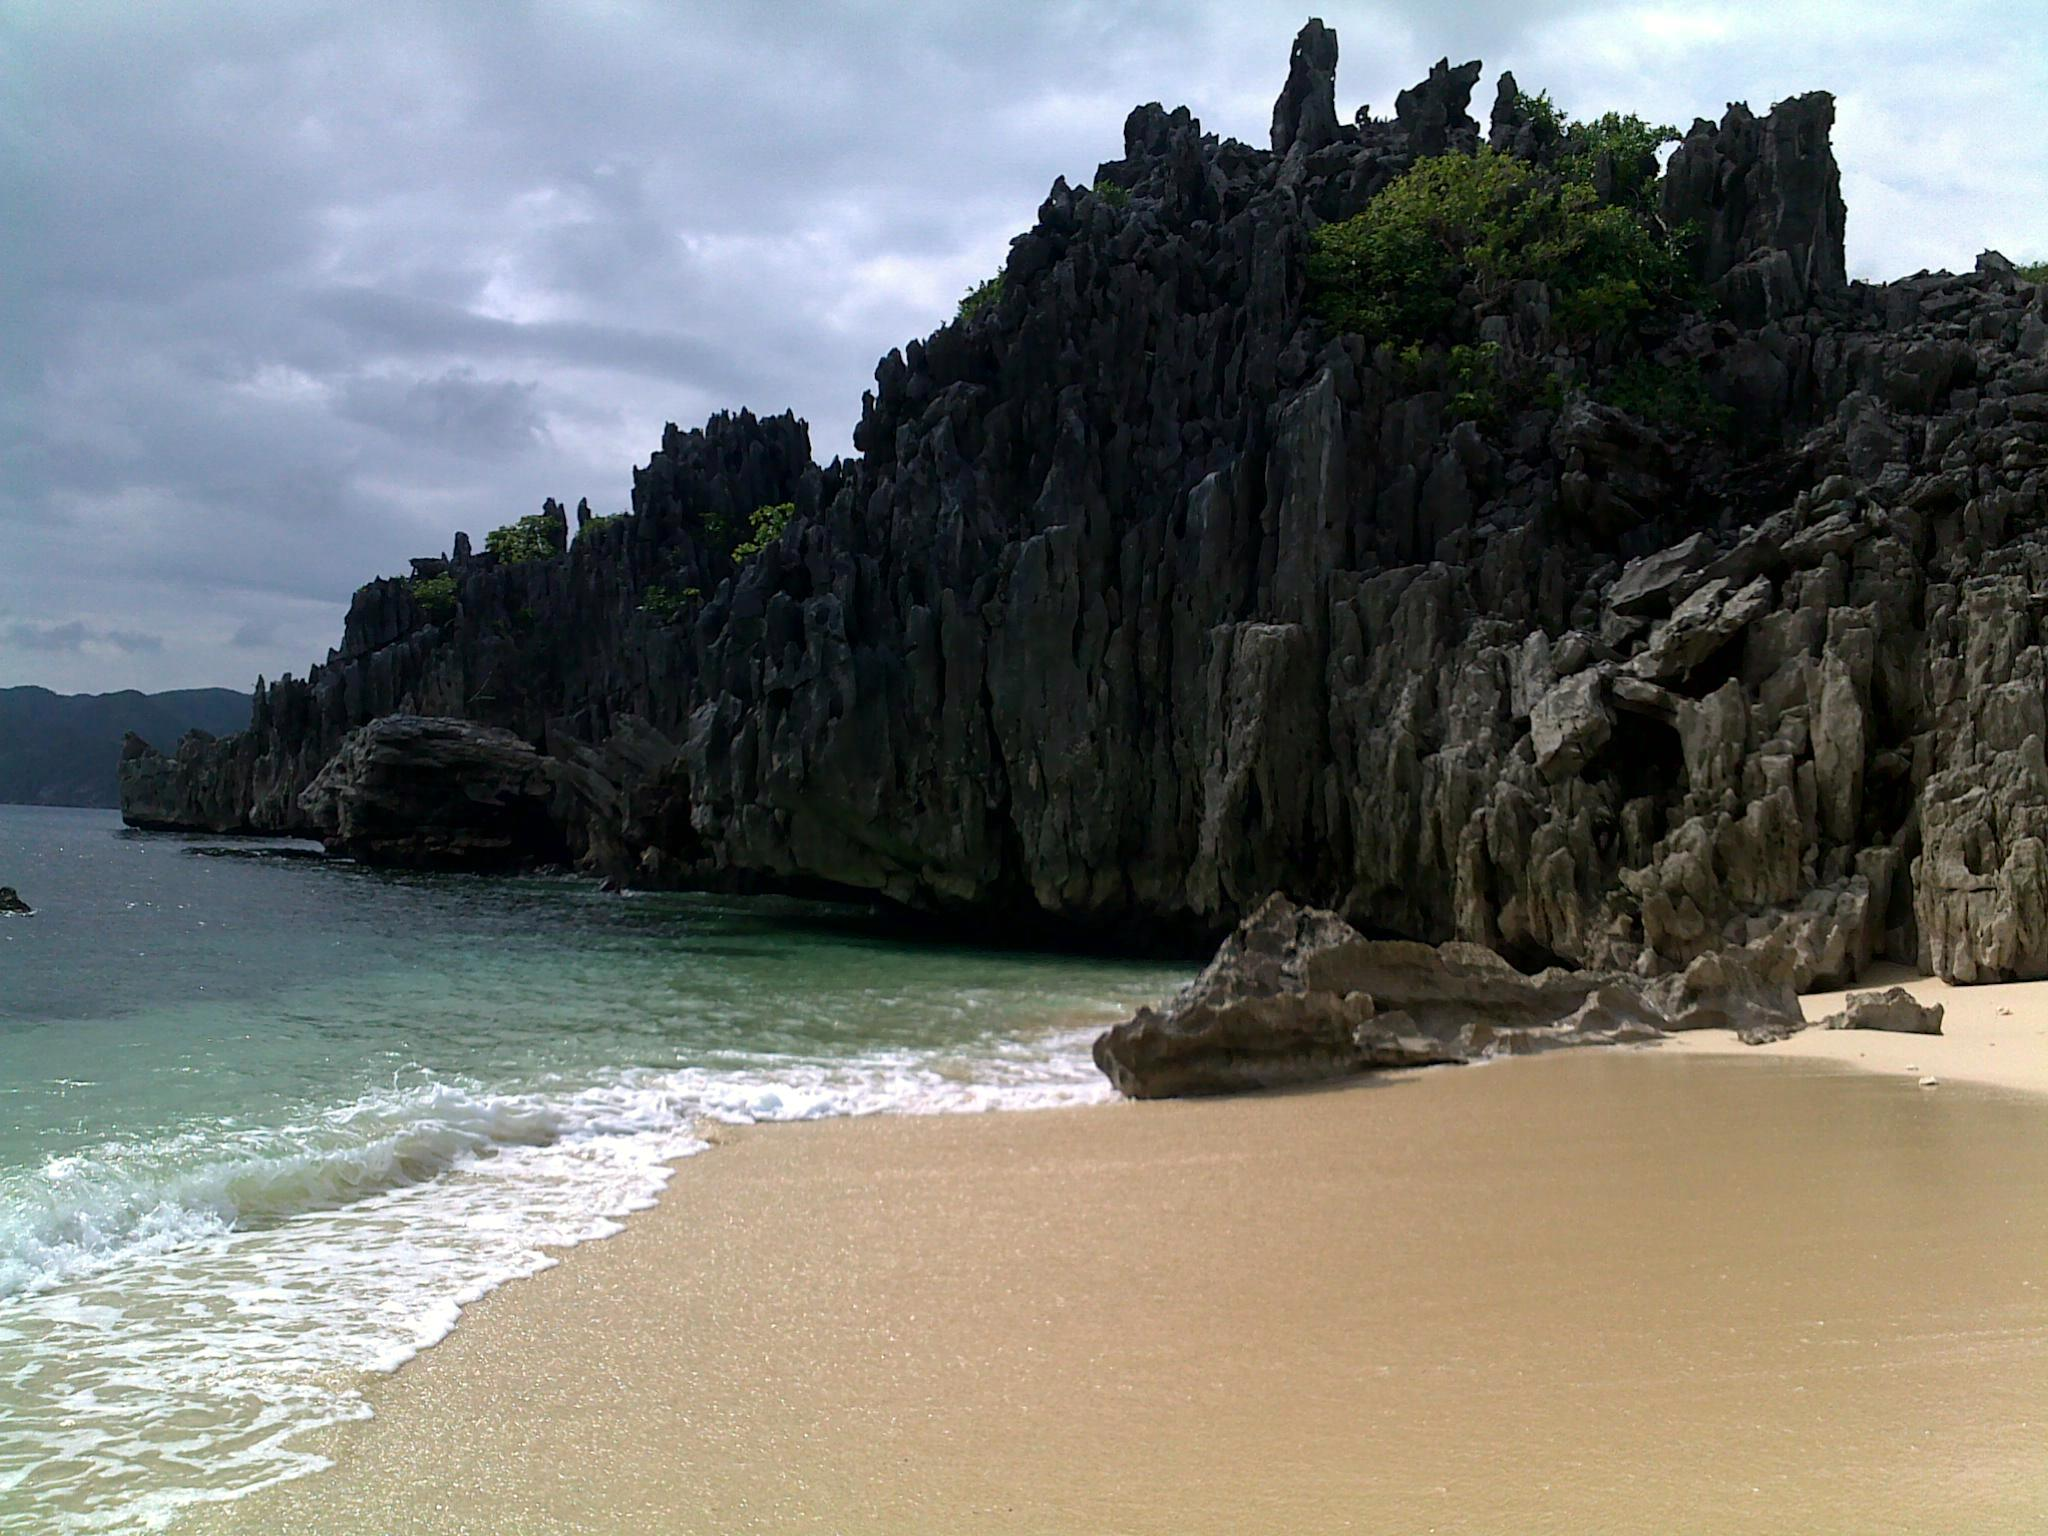 Caramoan Philippines  City pictures : Survivor Season 25 location, Caramoan Philippines | WITHOUT WANG²